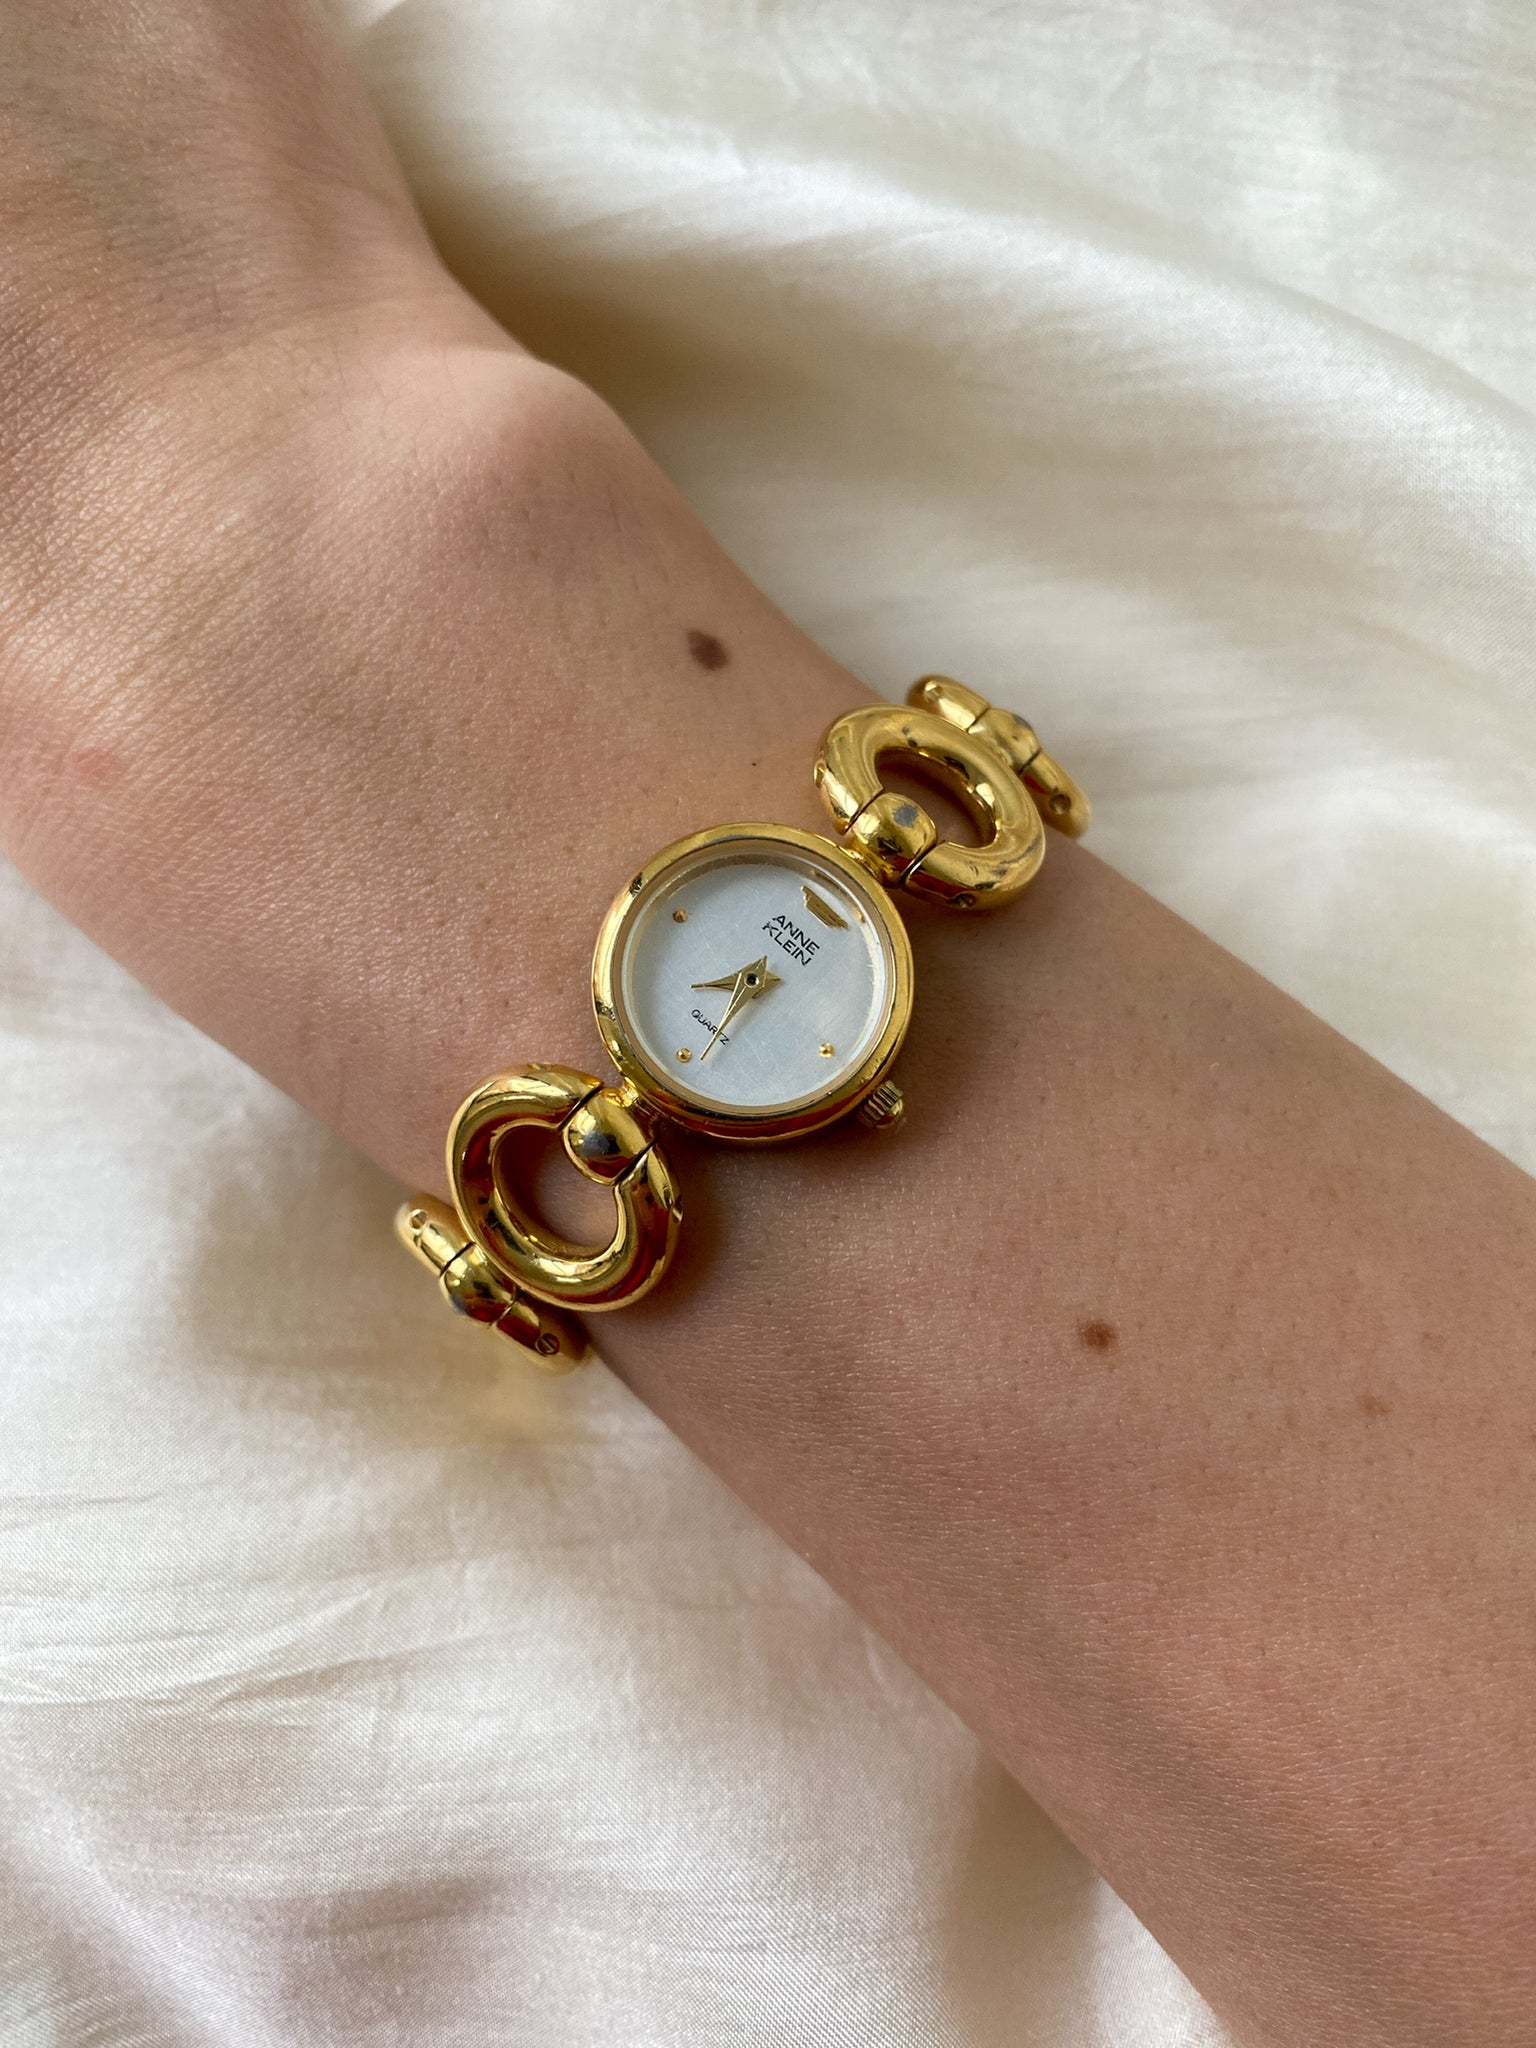 Vintage Gold Tone Women's Watch by Anne Klein